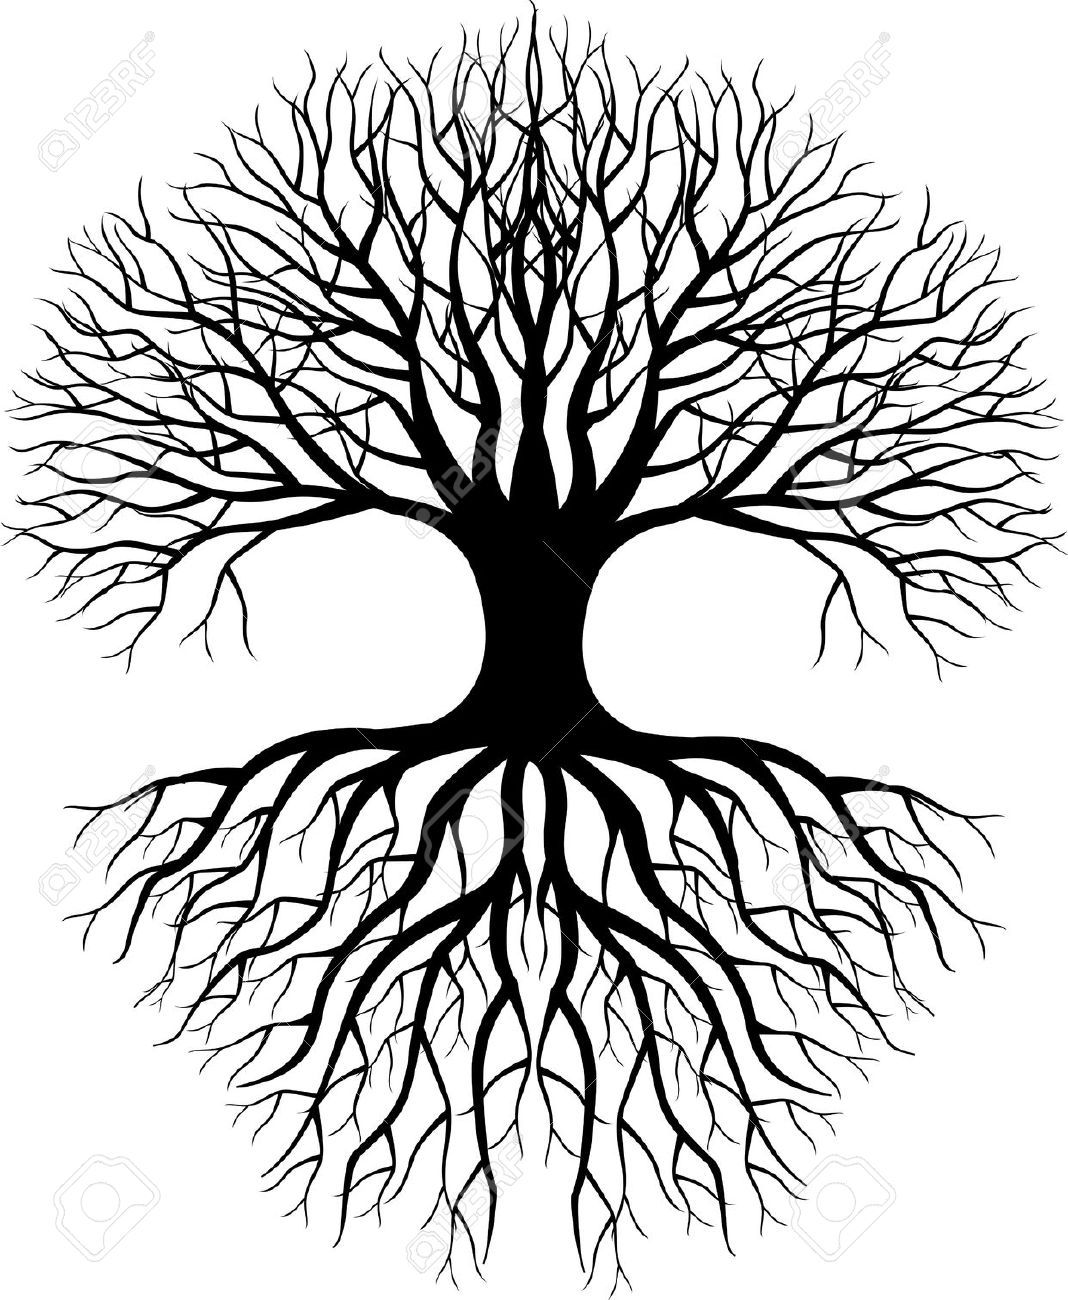 Sgrafitto clipart tree picture black and white library Tree Silhouette Royalty Free Cliparts, Vectors, And Stock ... picture black and white library